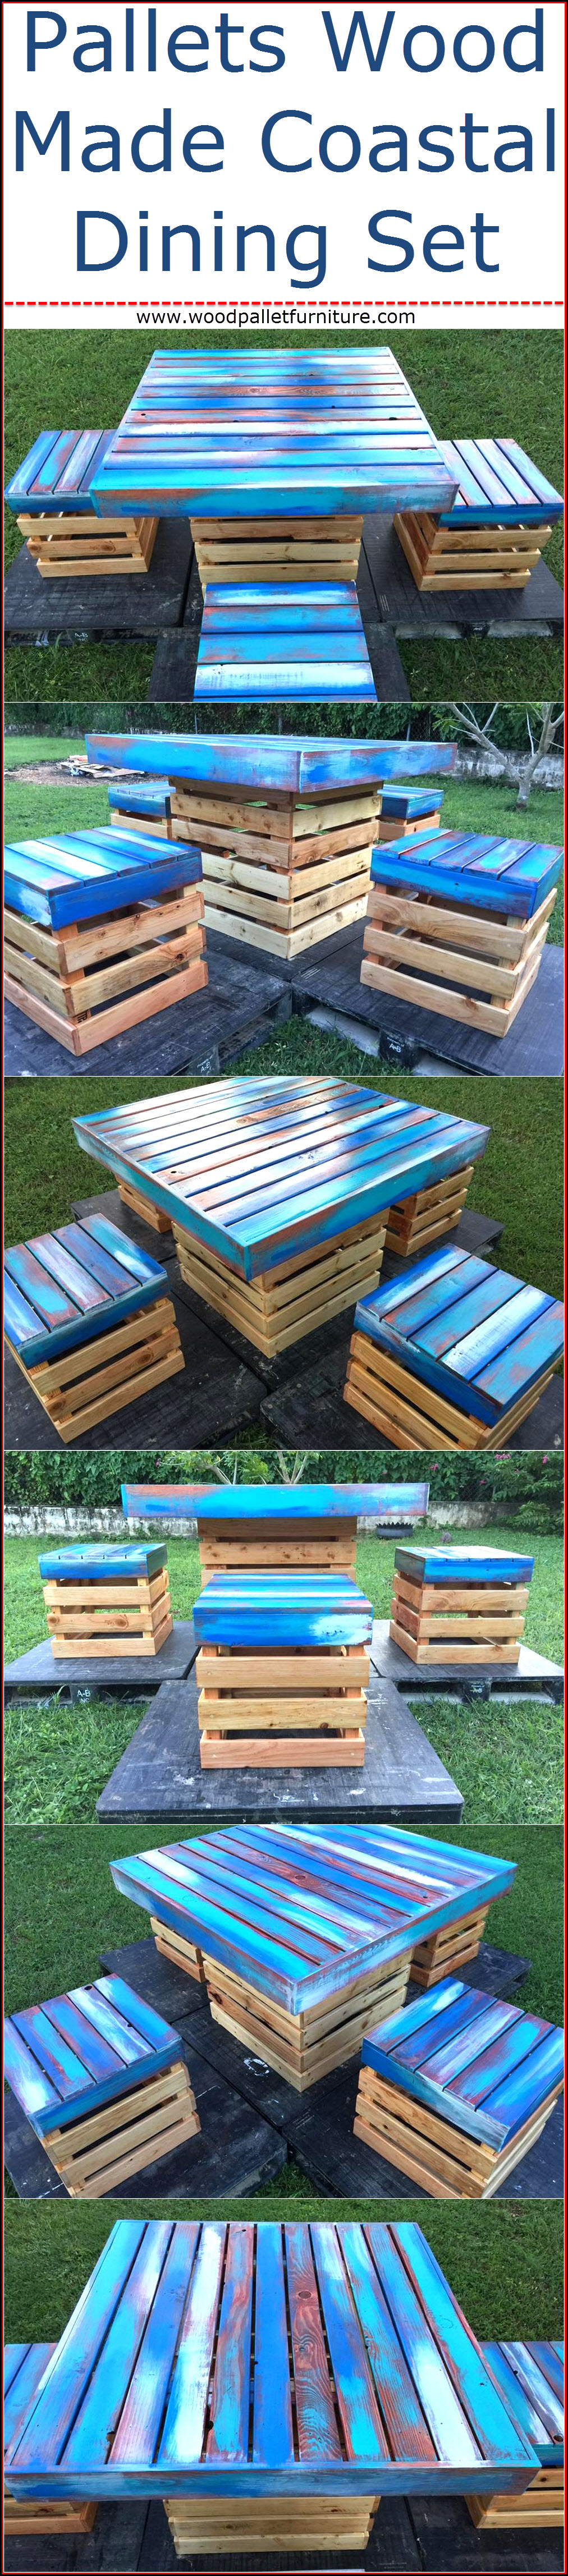 pallets-wood-made-coastal-dining-set